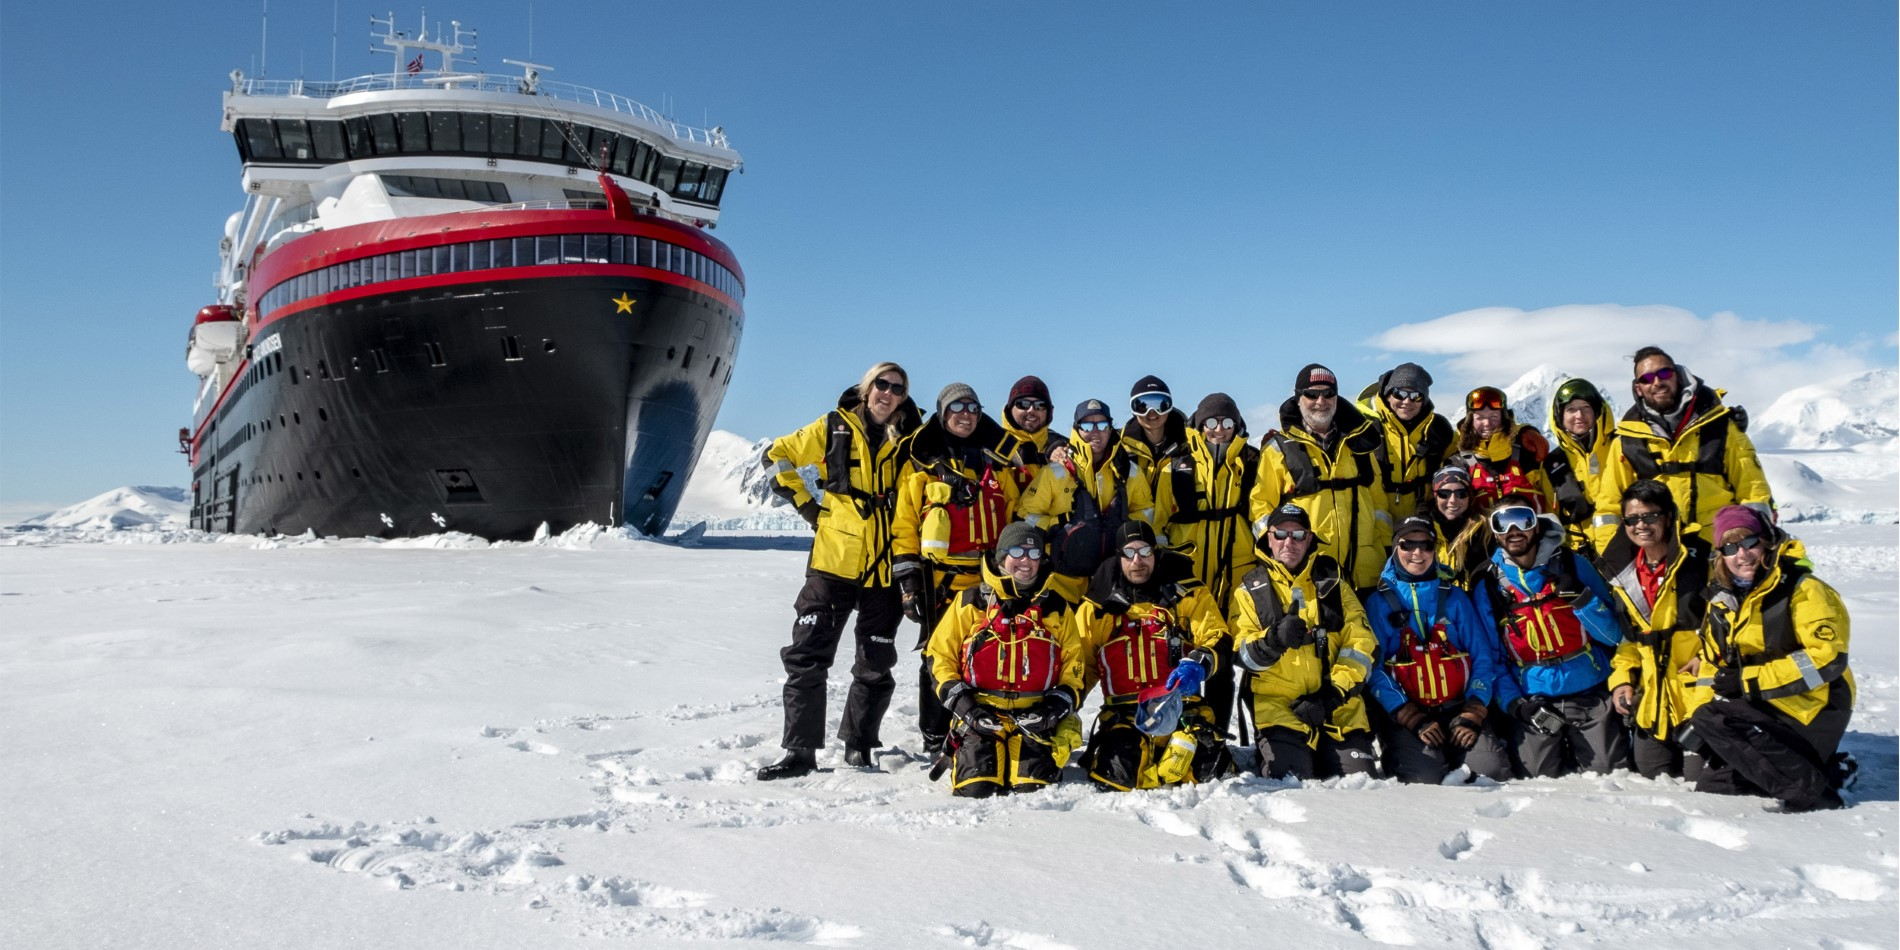 Landing with MS Roald Amundsen's expedition team in Antarctica